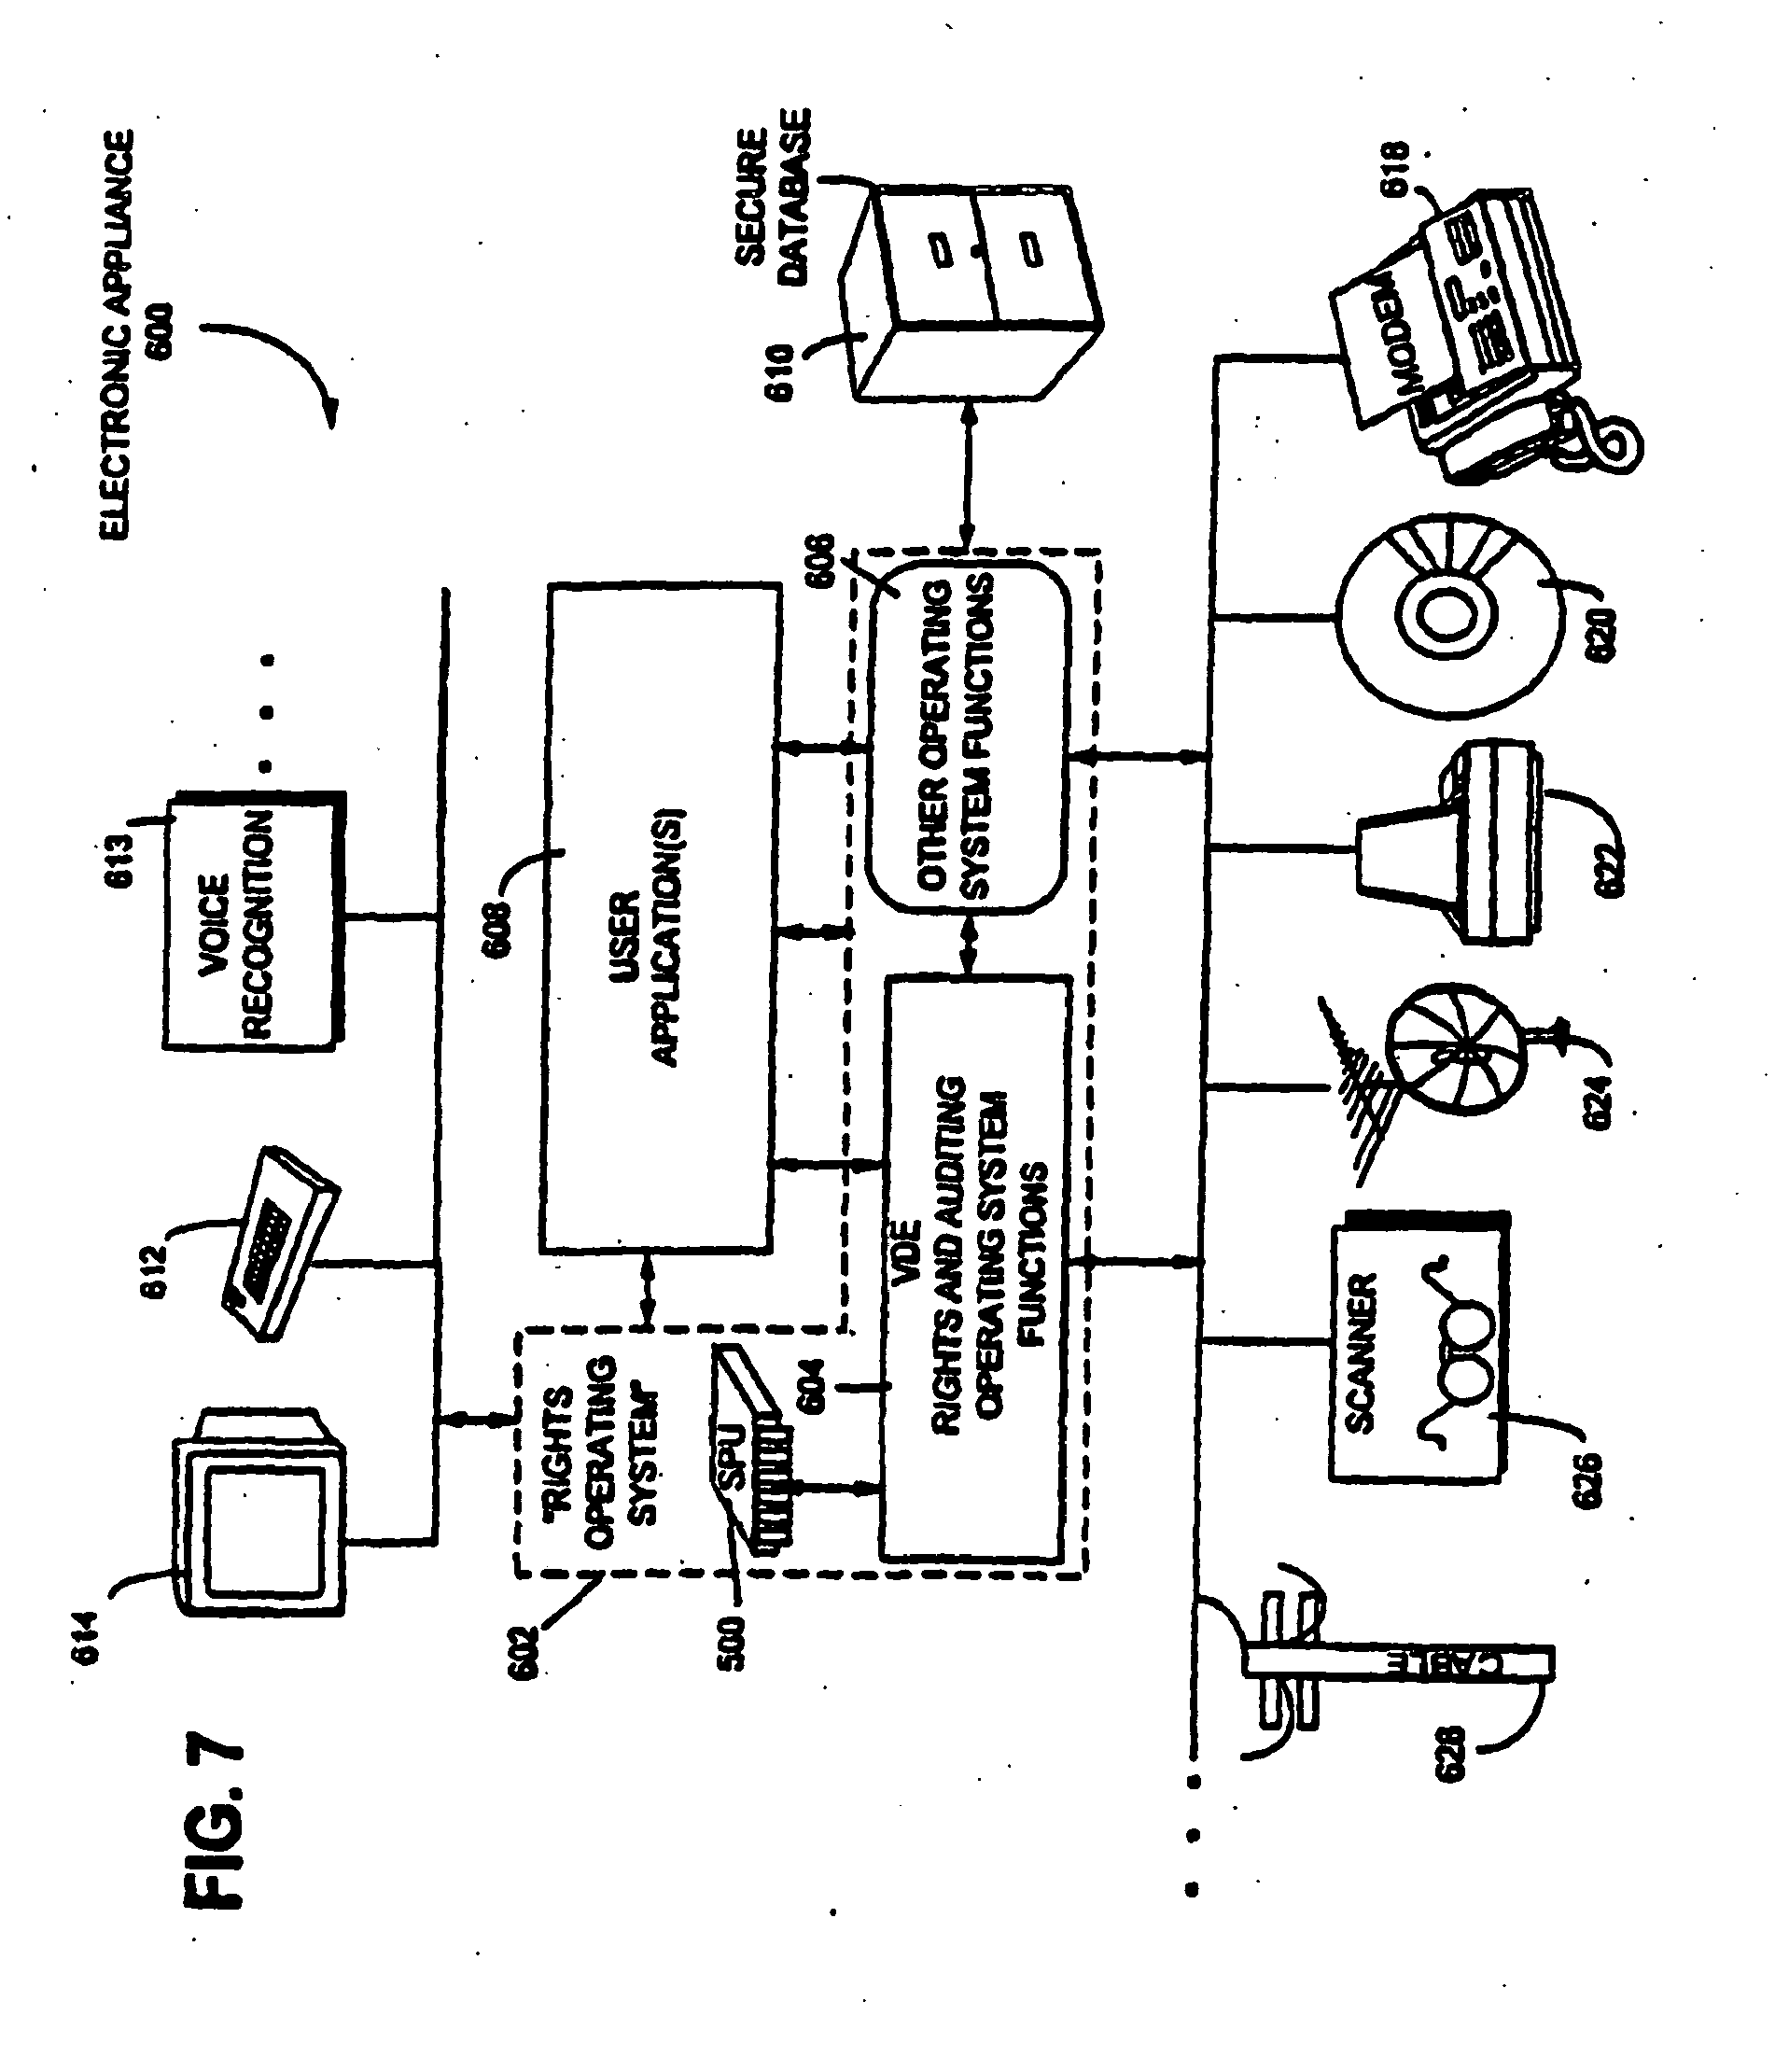 Ep1531379b2 Systems And Methods For Secure Transaction Management Pic Programmable Integrated Circuits Wouter Van Ooijen Electronic Rights Protection Google Patents